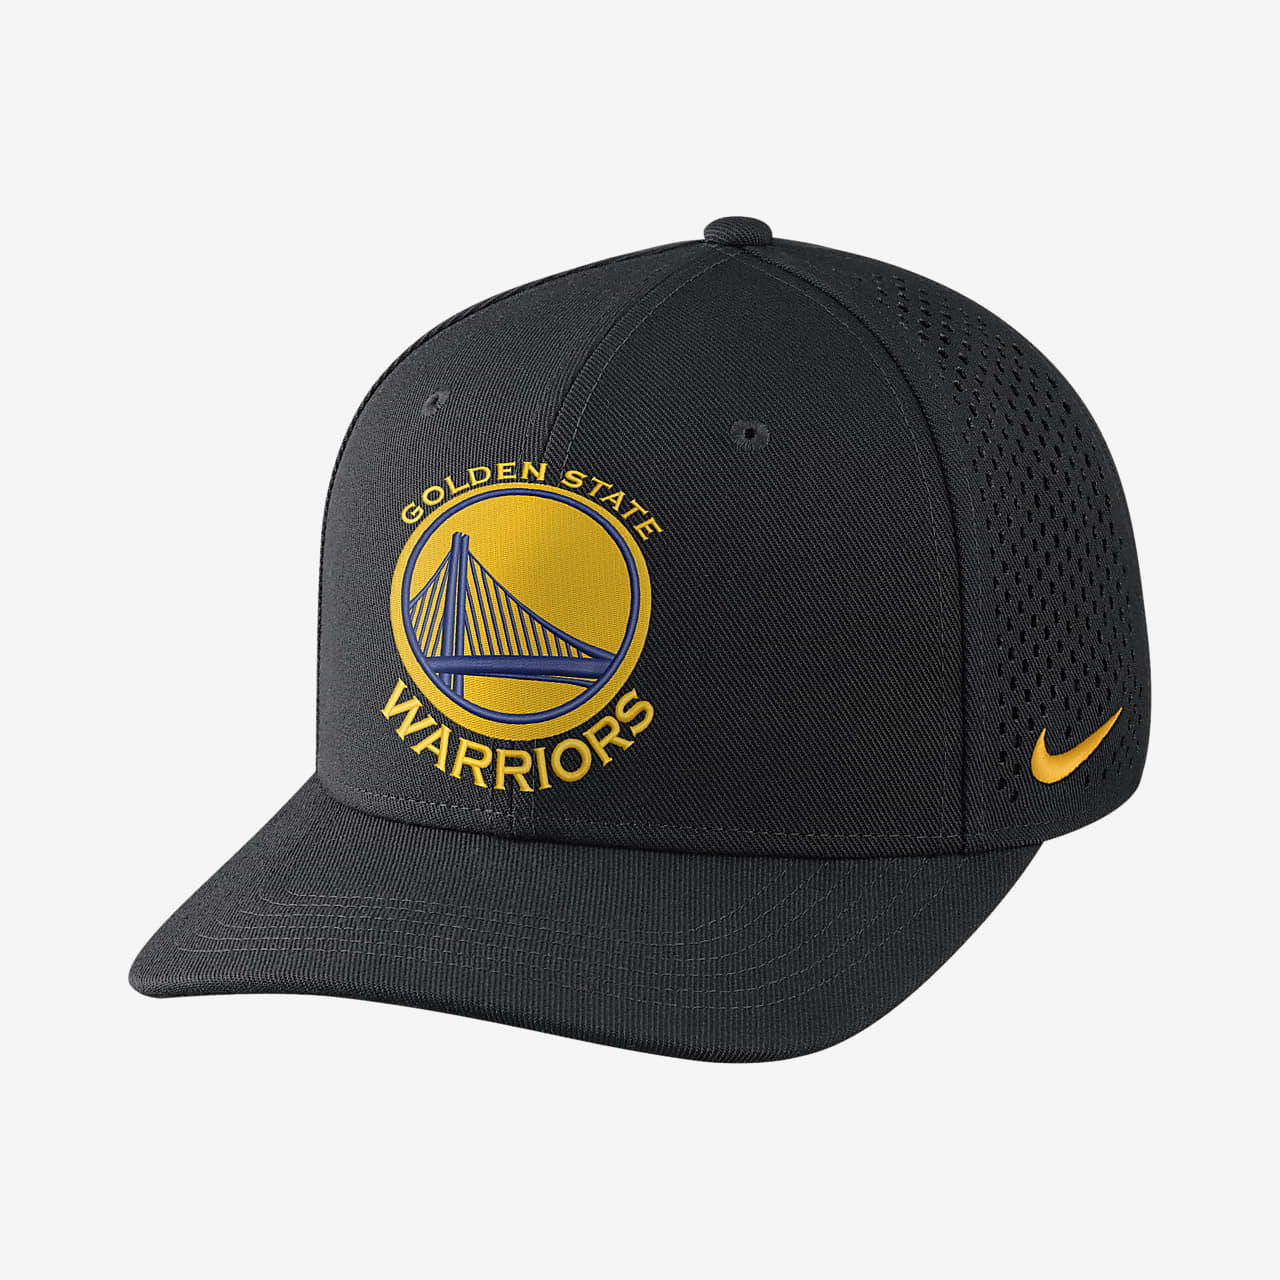 Golden State Warriors Nike AeroBill Classic99 Unisex Adjustable NBA Hat